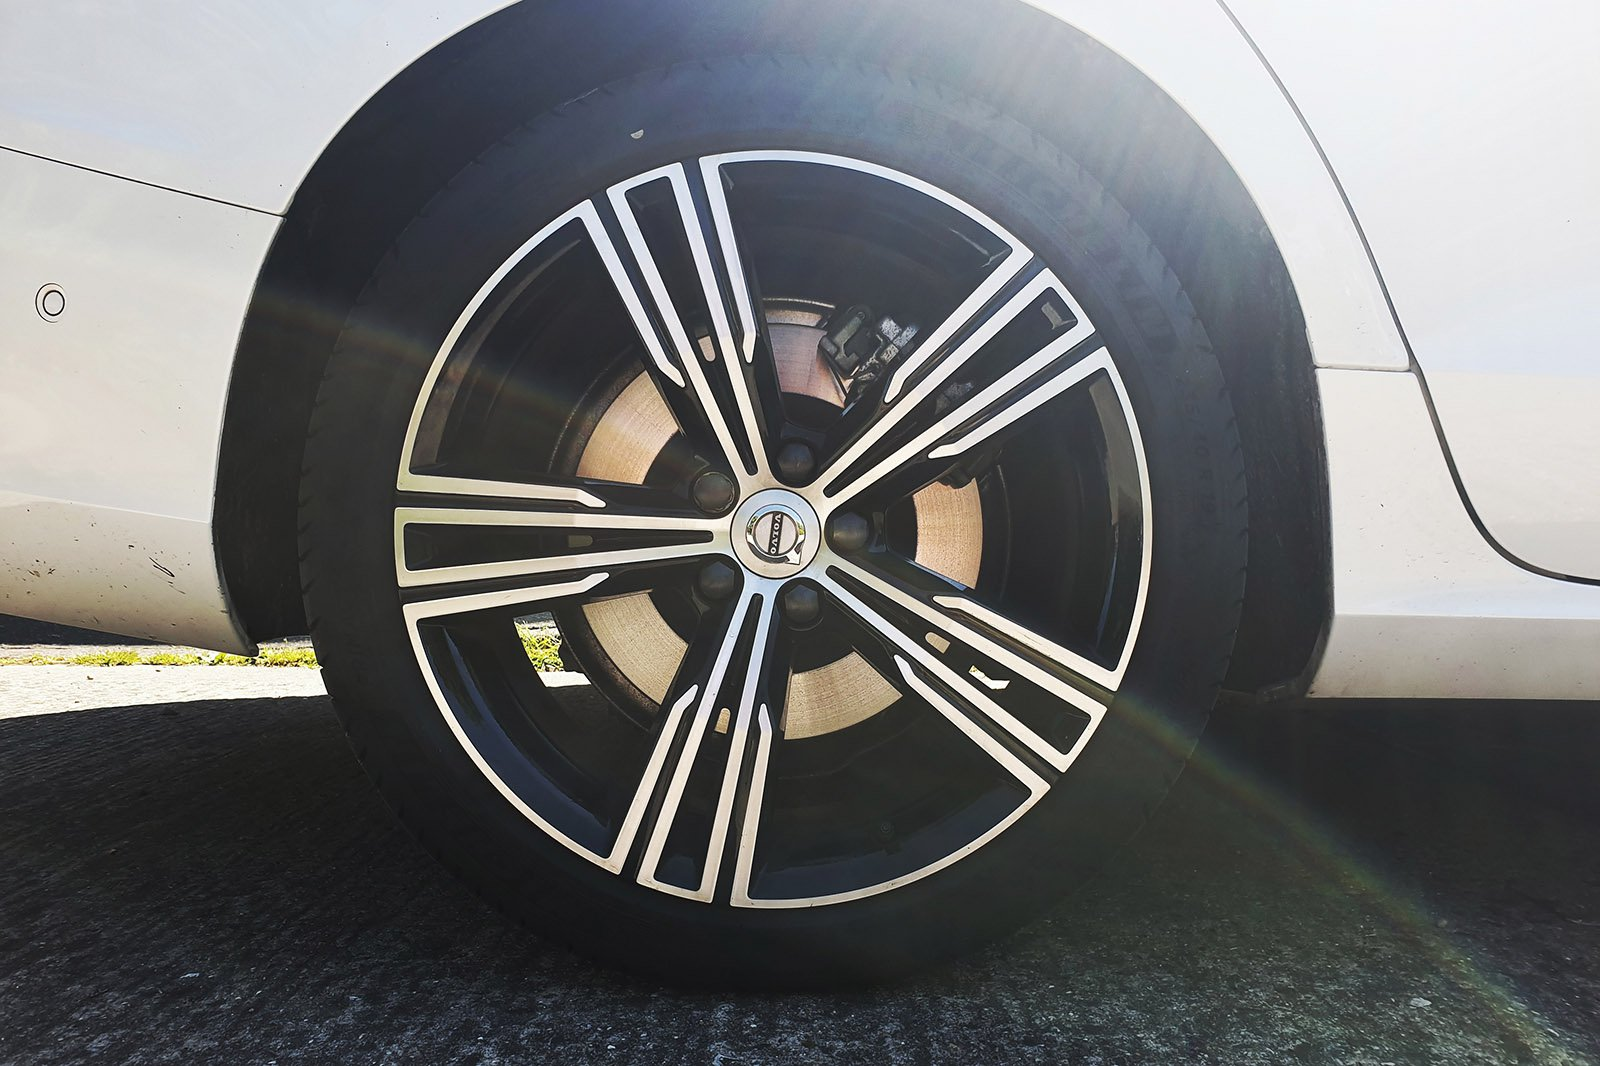 Volvo S60 T5 2020 wheel detail